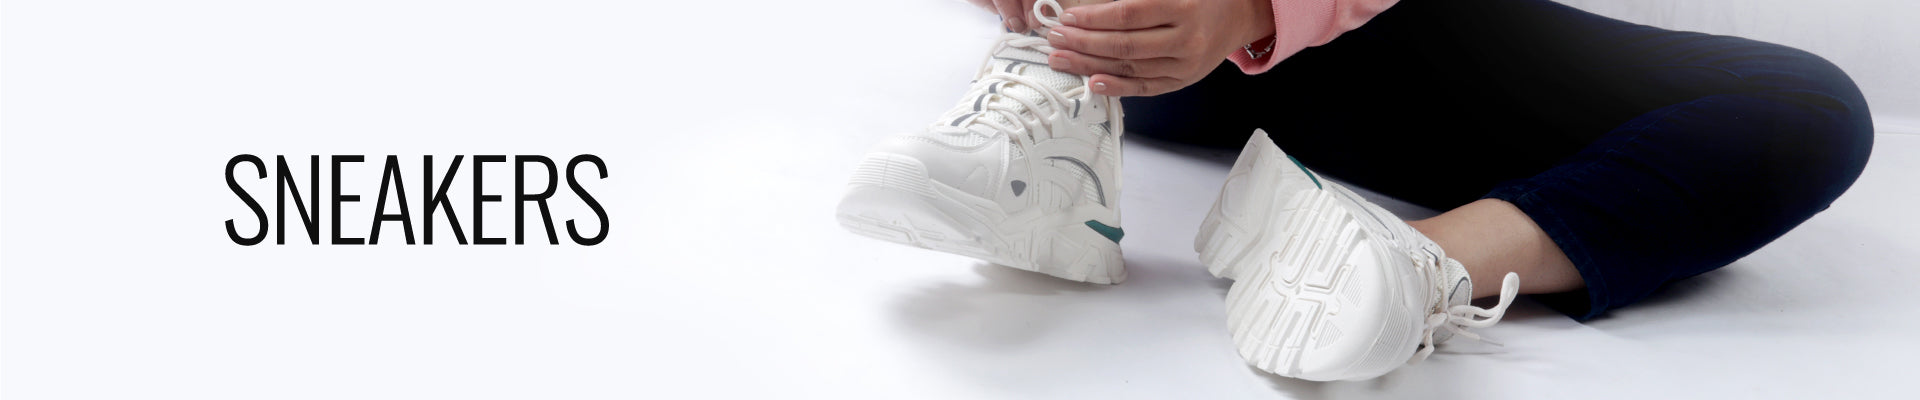 Sneakers CategoryBanner